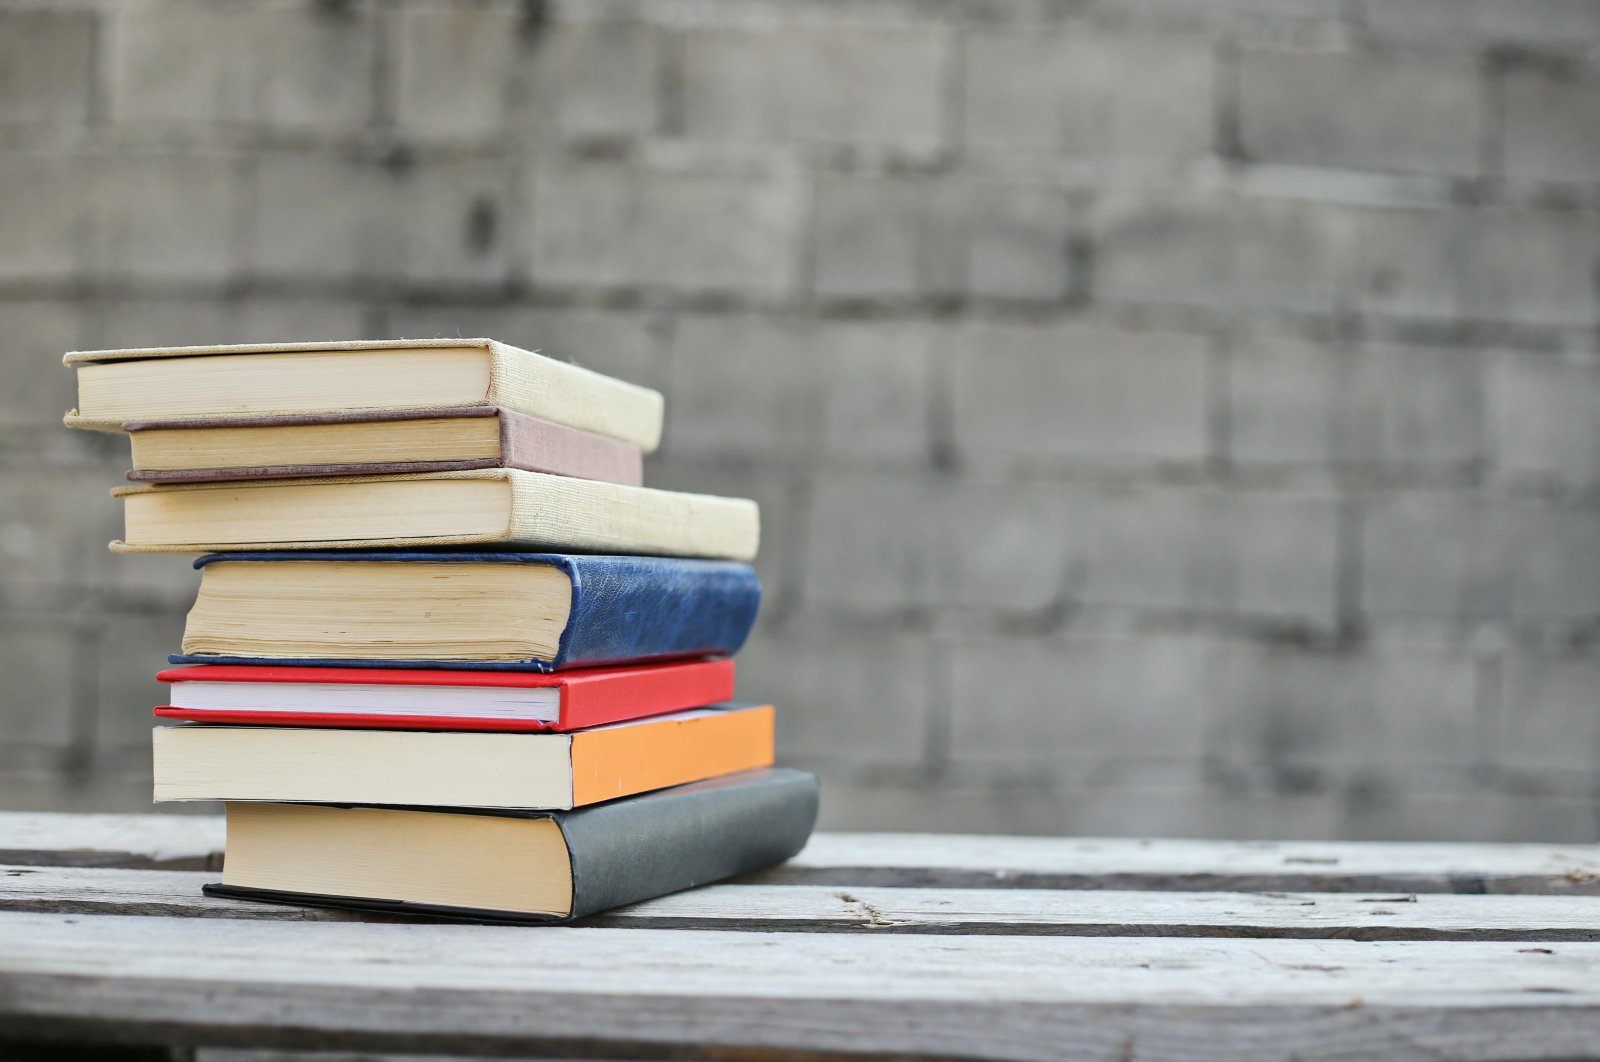 The works of prominent Turkish authors like Orhan Pamuk and Sabahattin Ali are loved around the globe. (Shutterstock Photo)